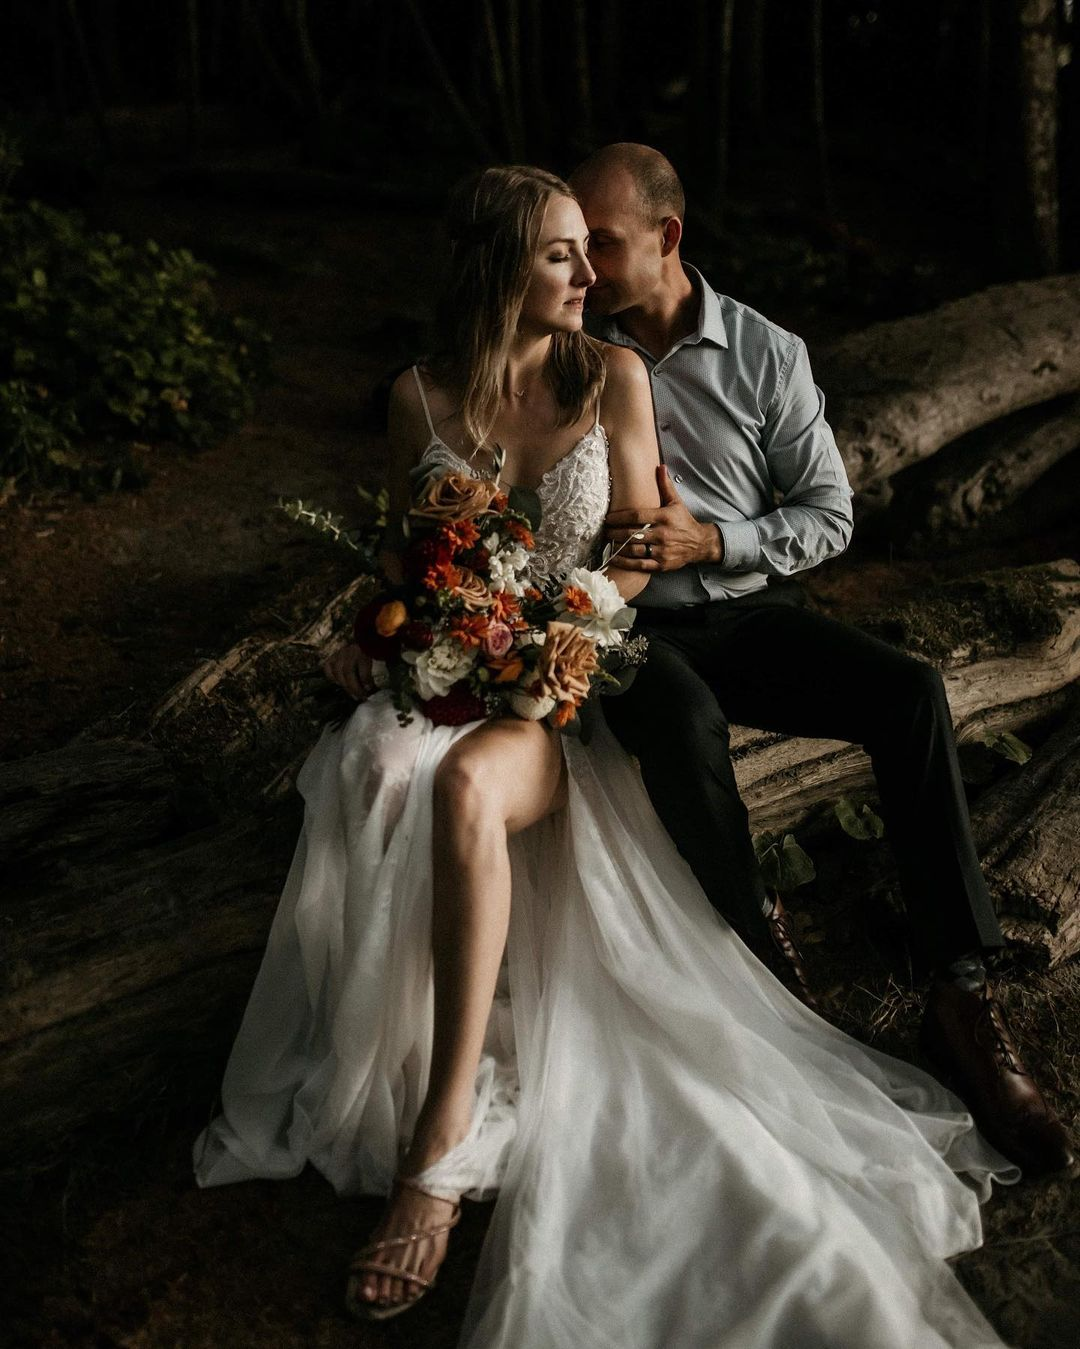 A bride and groom posing facing each other while being seated on a log